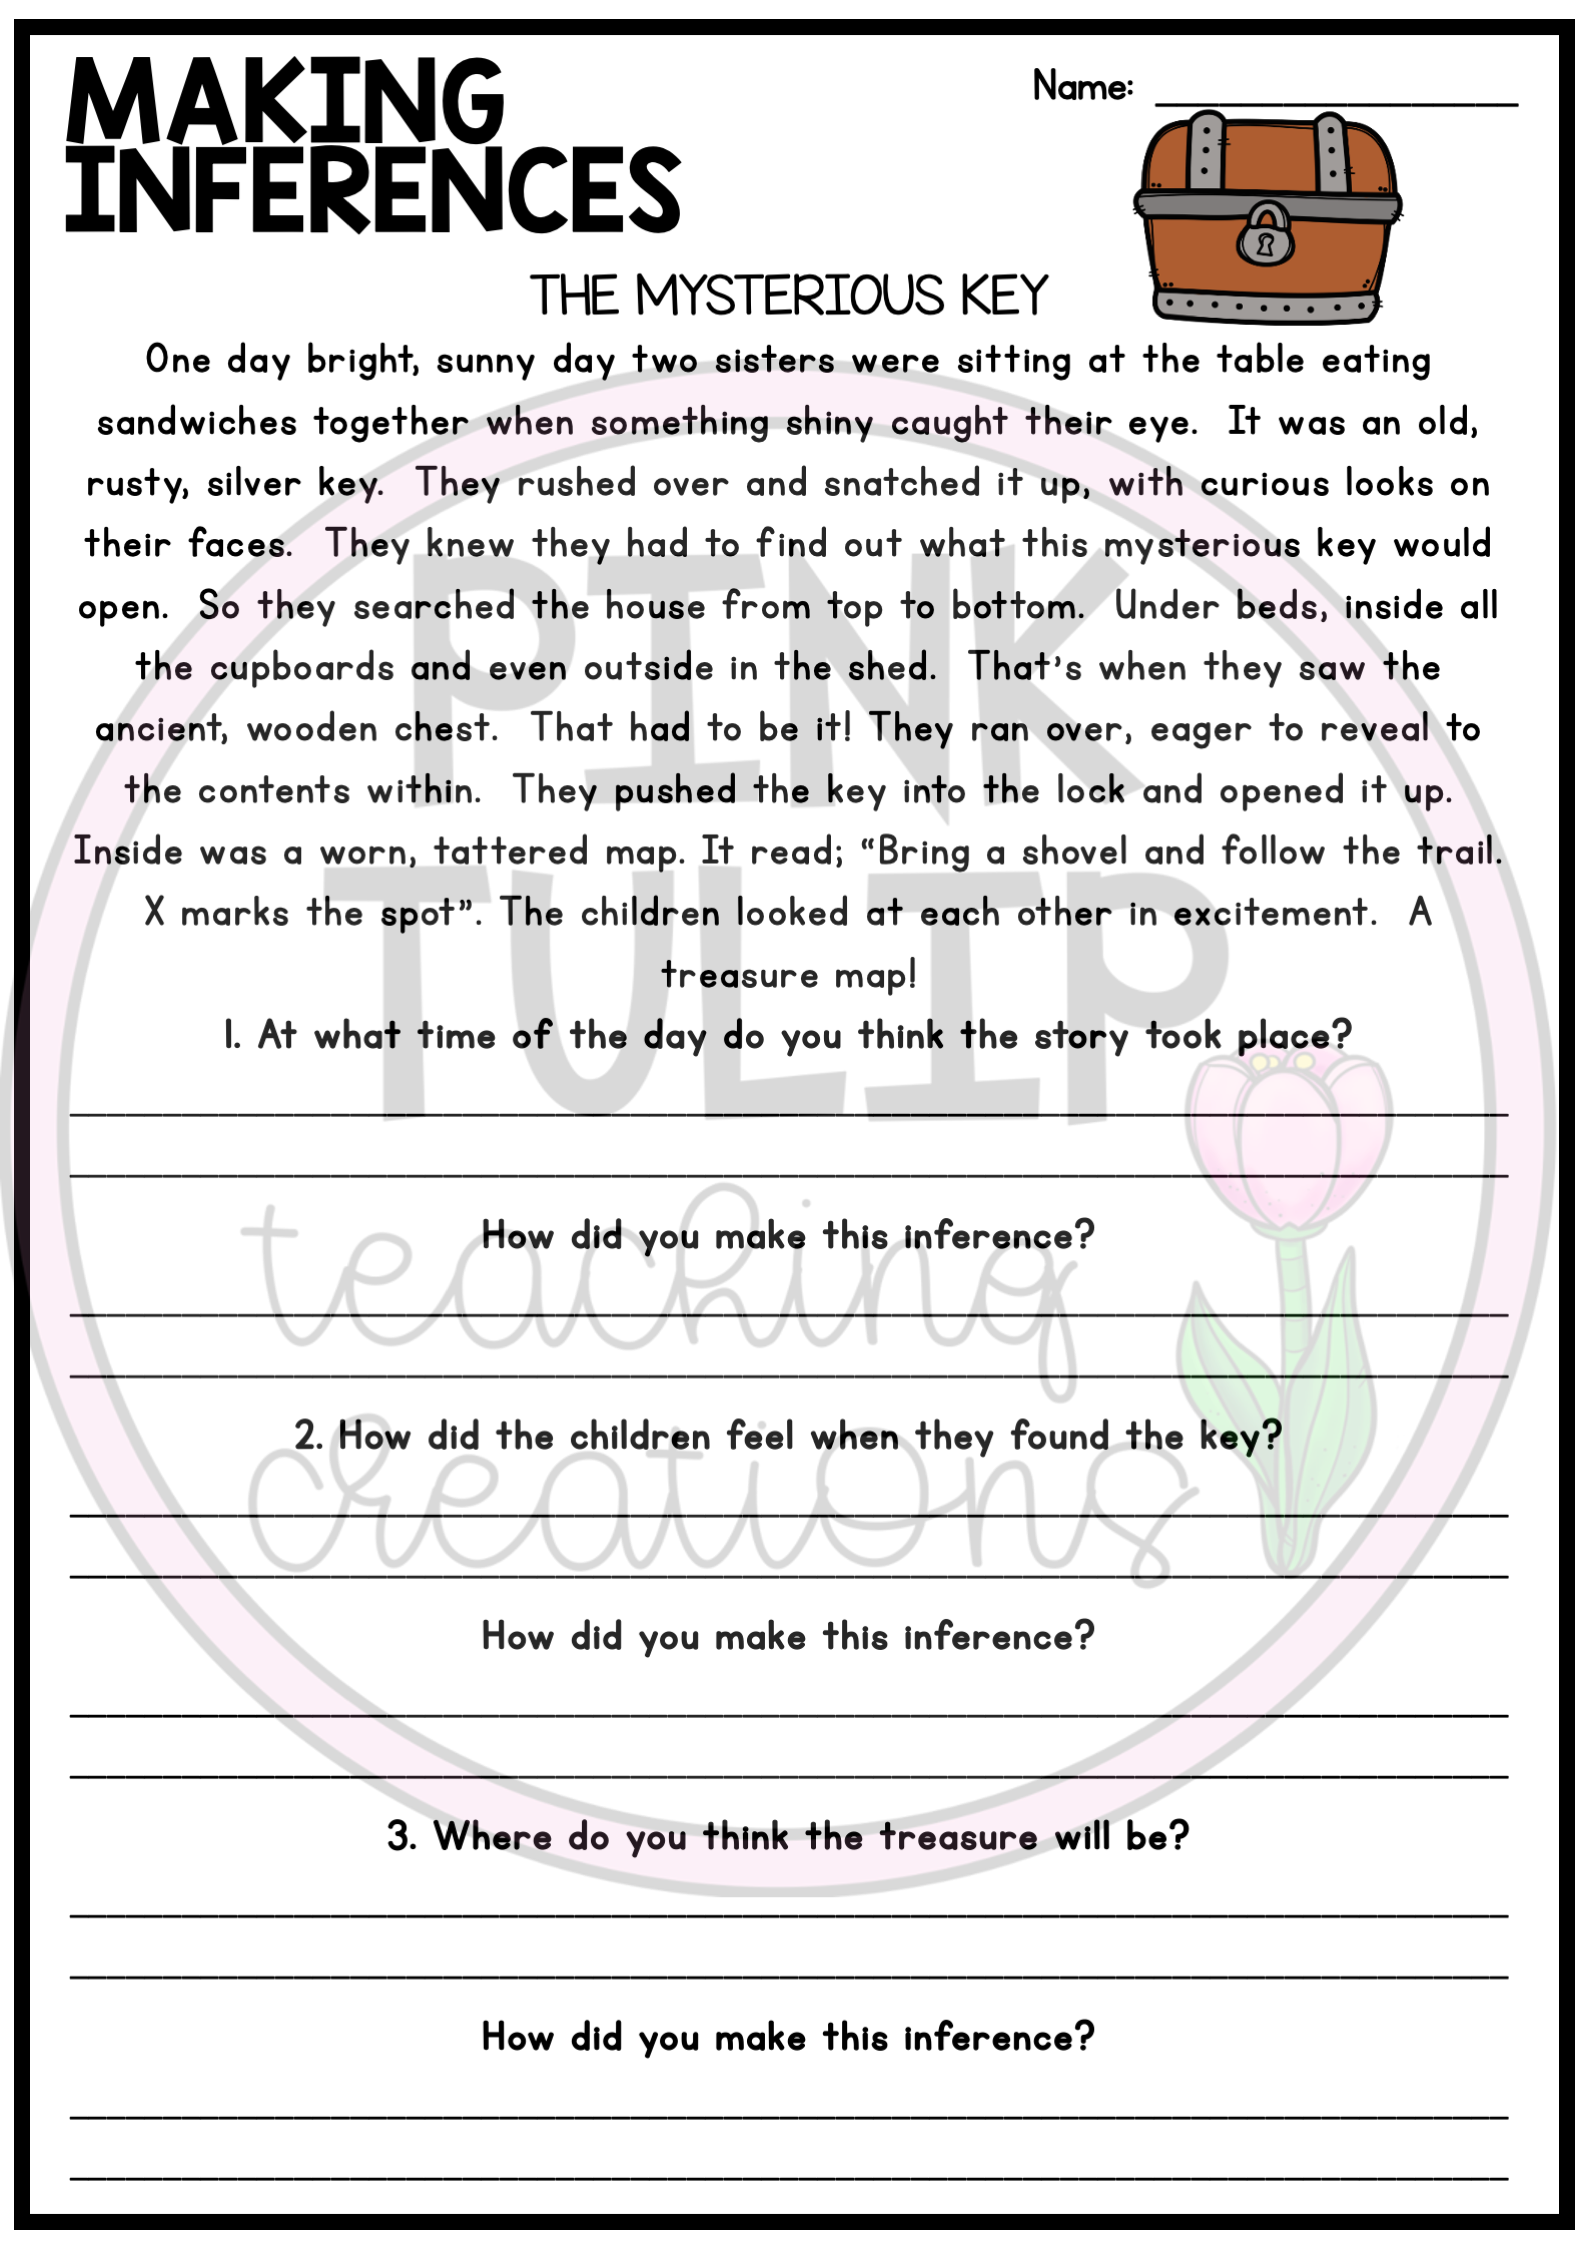 hight resolution of Making Inferences Worksheets 7th Grade   Printable Worksheets and  Activities for Teachers